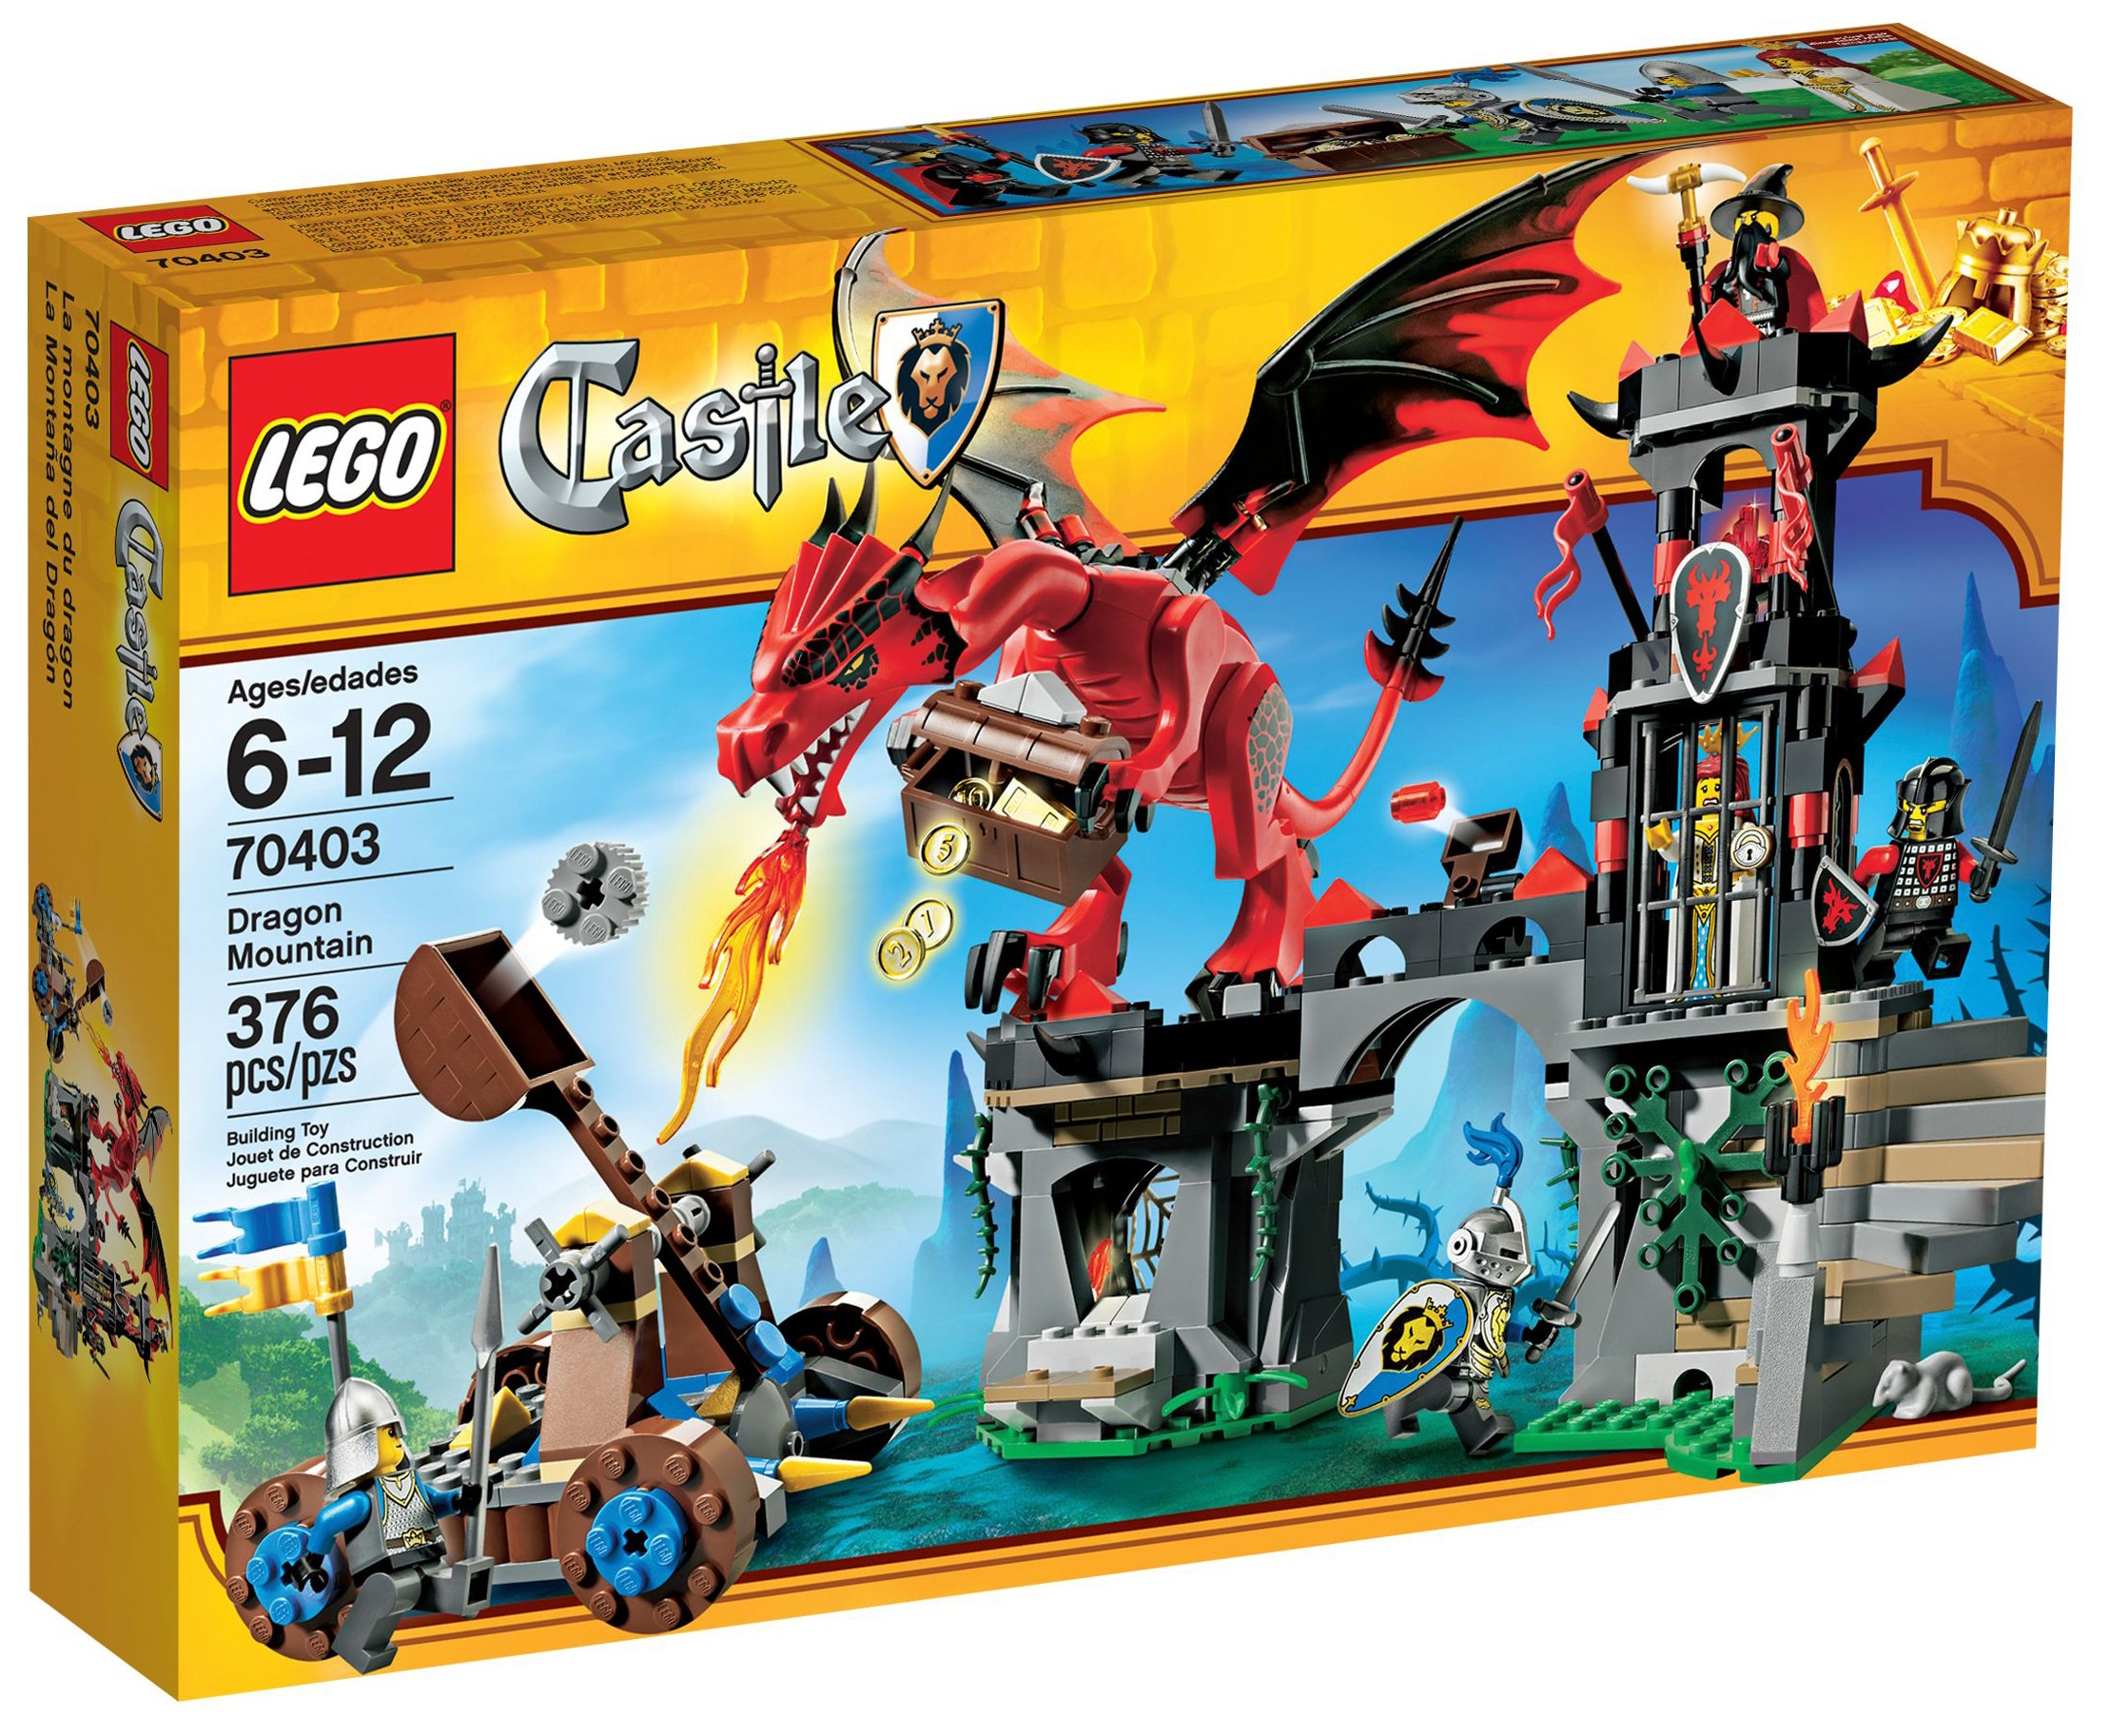 Lion Soldier Only LEGO Castle 70403 Dragon Mountain New Never Played